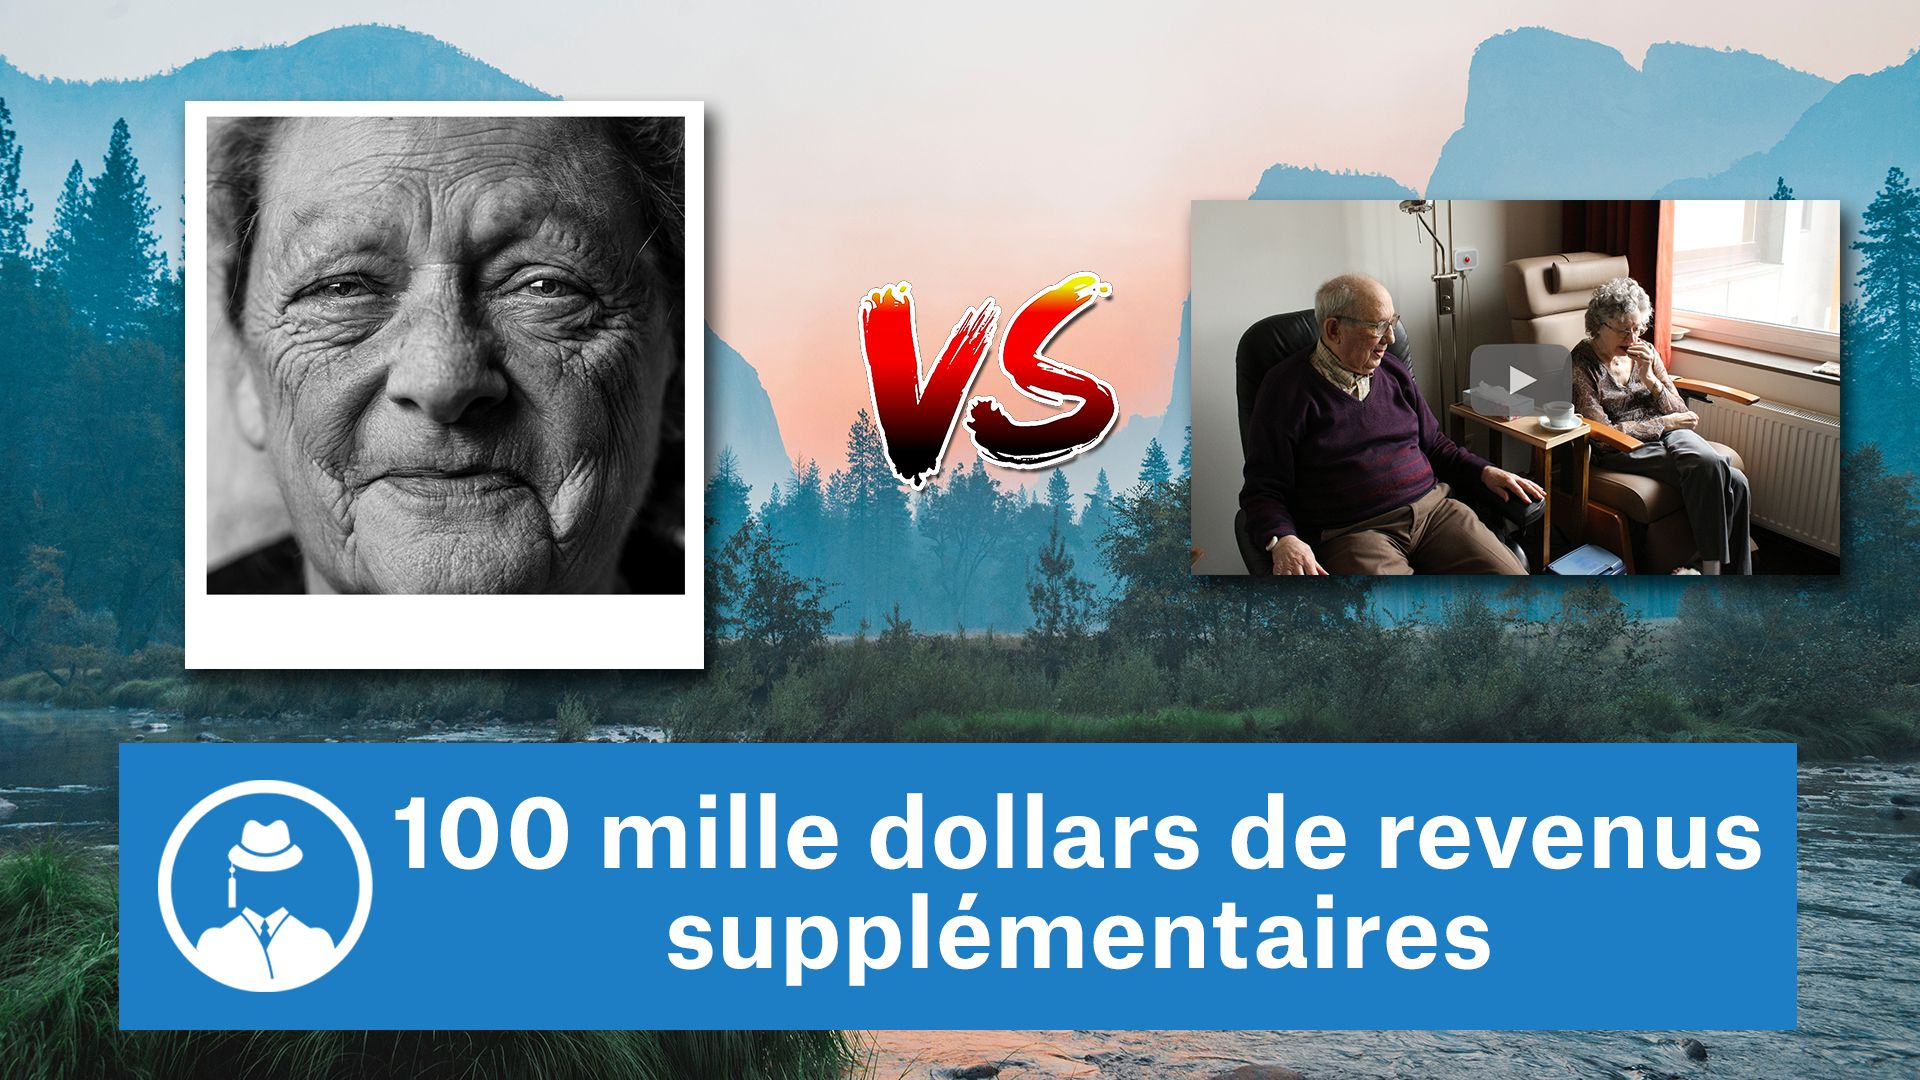 100 mille dollars de revenus supplémentaires #GrowthHacking #WebMarketing #FormationGrowthHacking #CentreDeFormationFrance #TunnelAARRR #AARRR #SocialMedia #CommunityManagement #SEO #MarketingDigital #SiteWeb